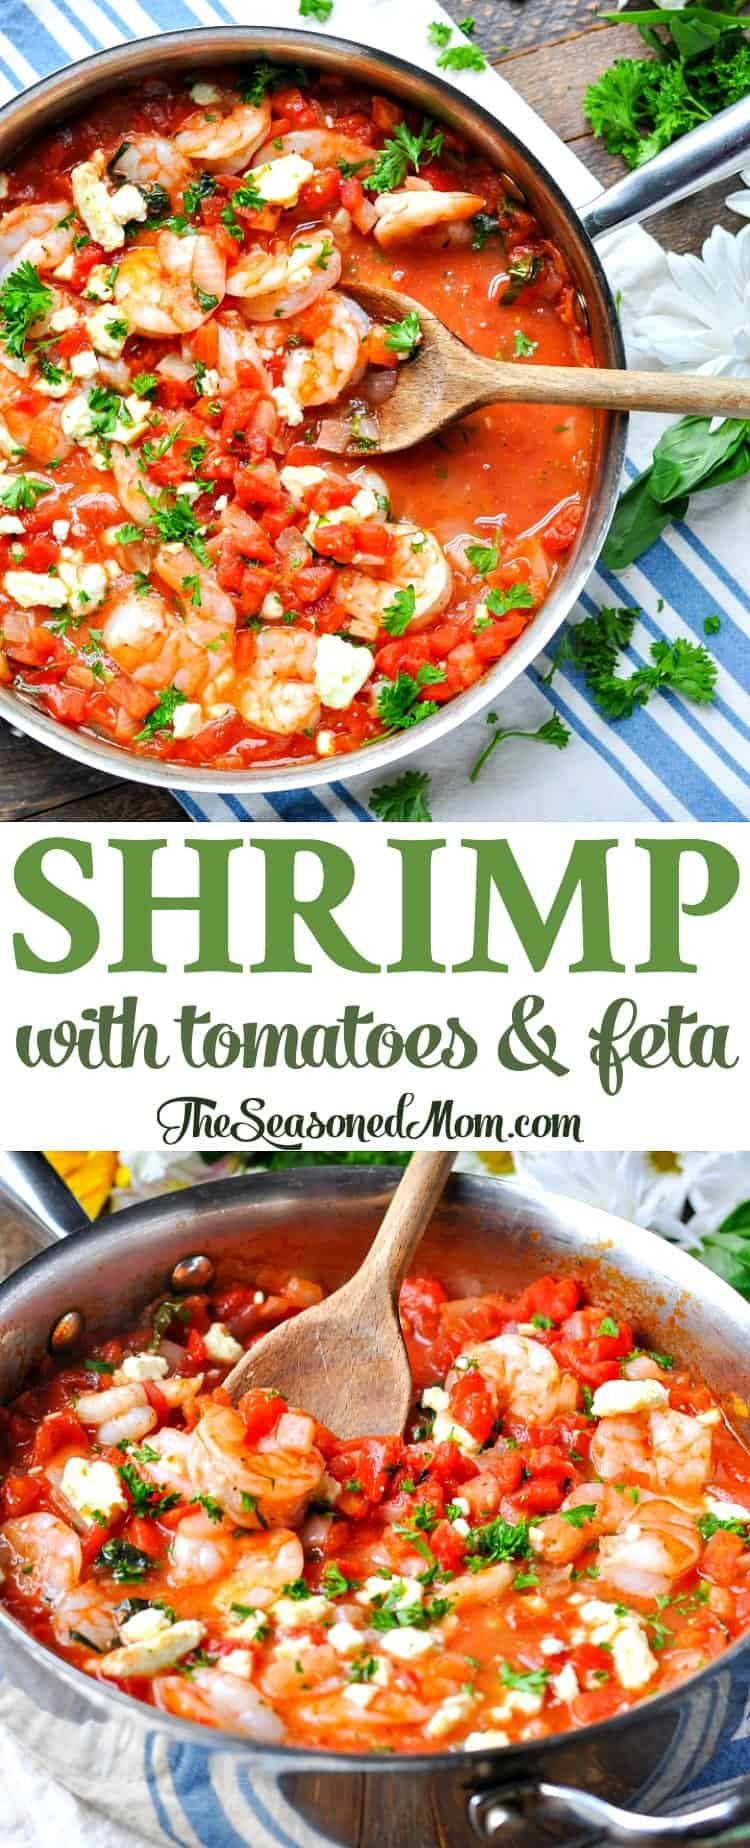 Shrimp with Tomatoes and Feta | Easy Dinner Recipes | Healthy Dinners | Healthy Dinner Recipes | Dinner Ideas | High Protein | Low Carb | Seafood Recipes | One Skillet | One Pan | Shrimp Recipes | Mediterranean Recipes | Mediterranean Food